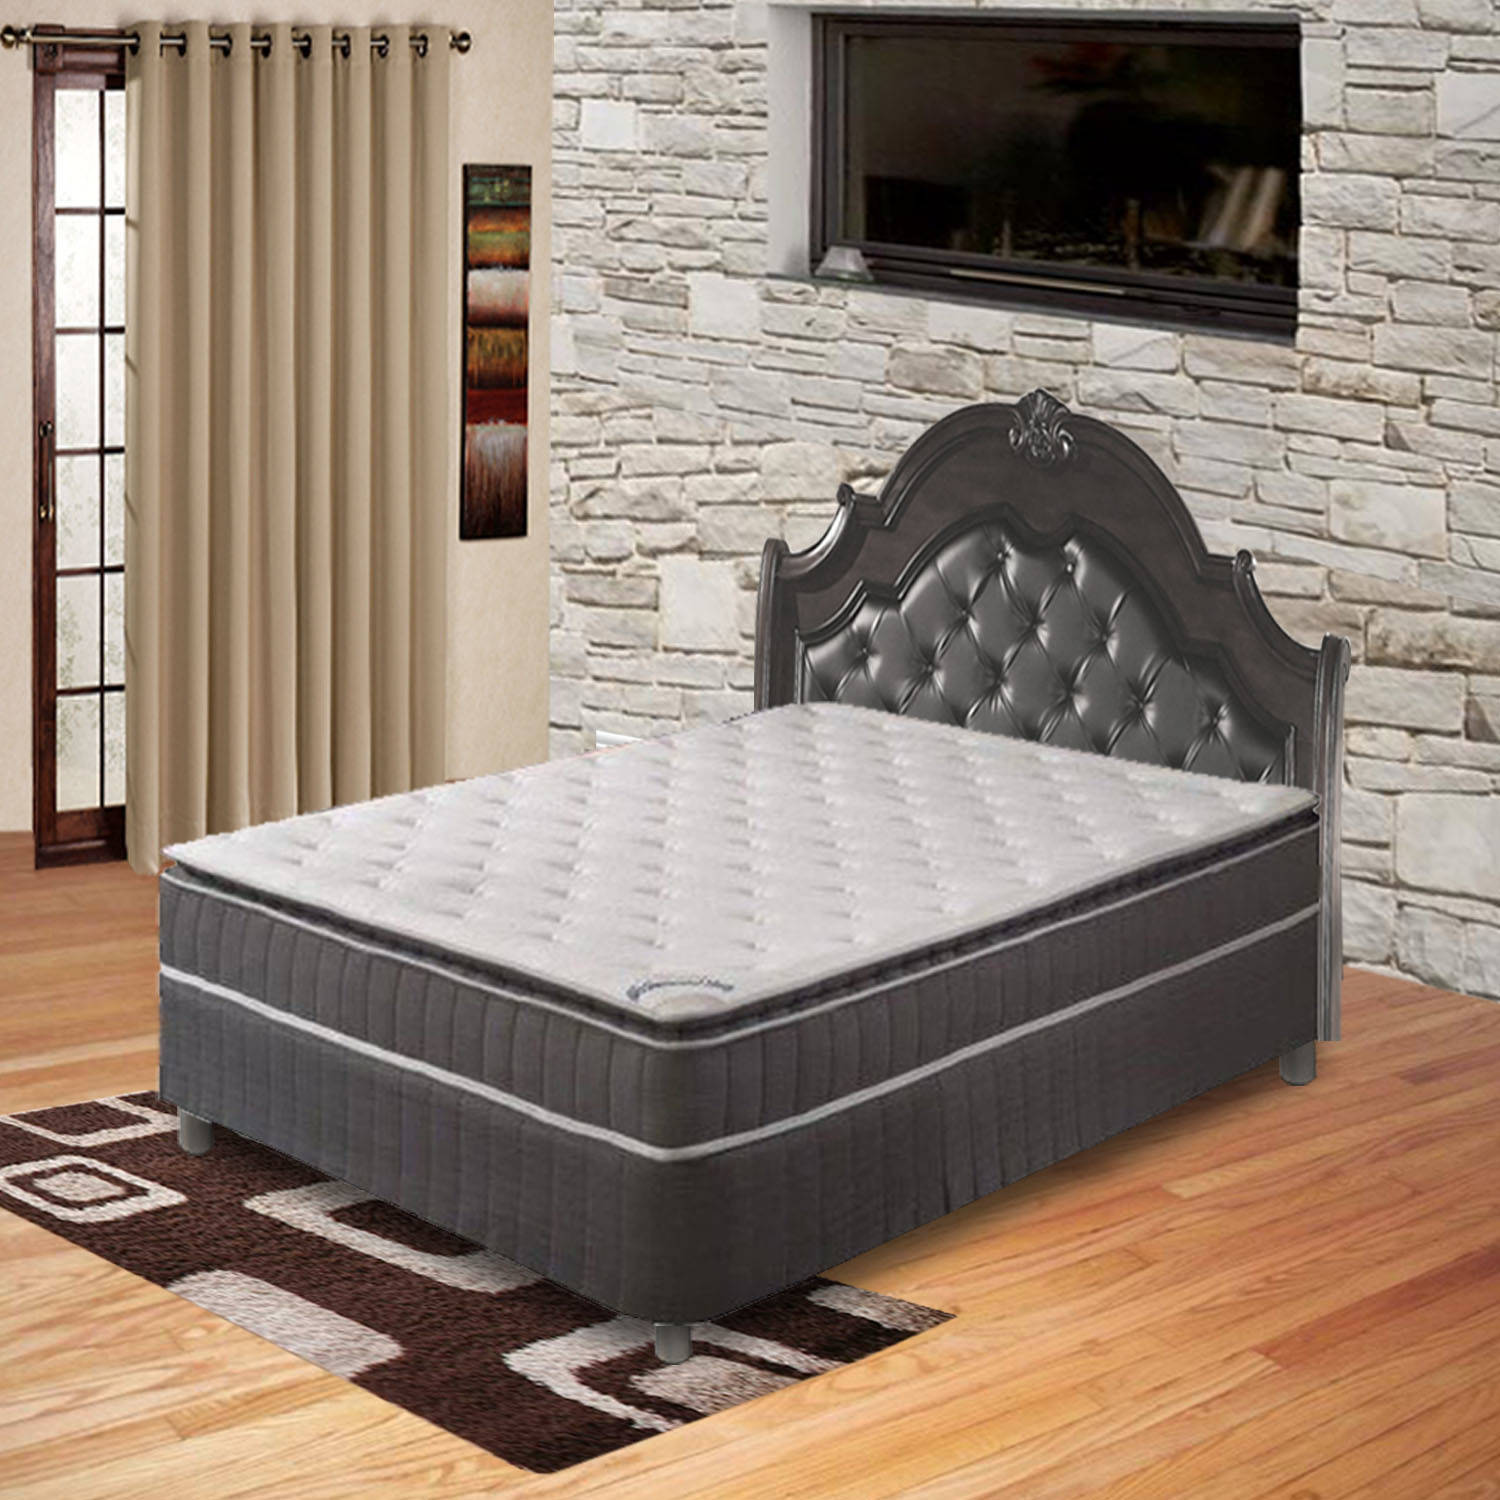 pillow top pocketed coil orthopedic mattress and 5inch box spring acura collection